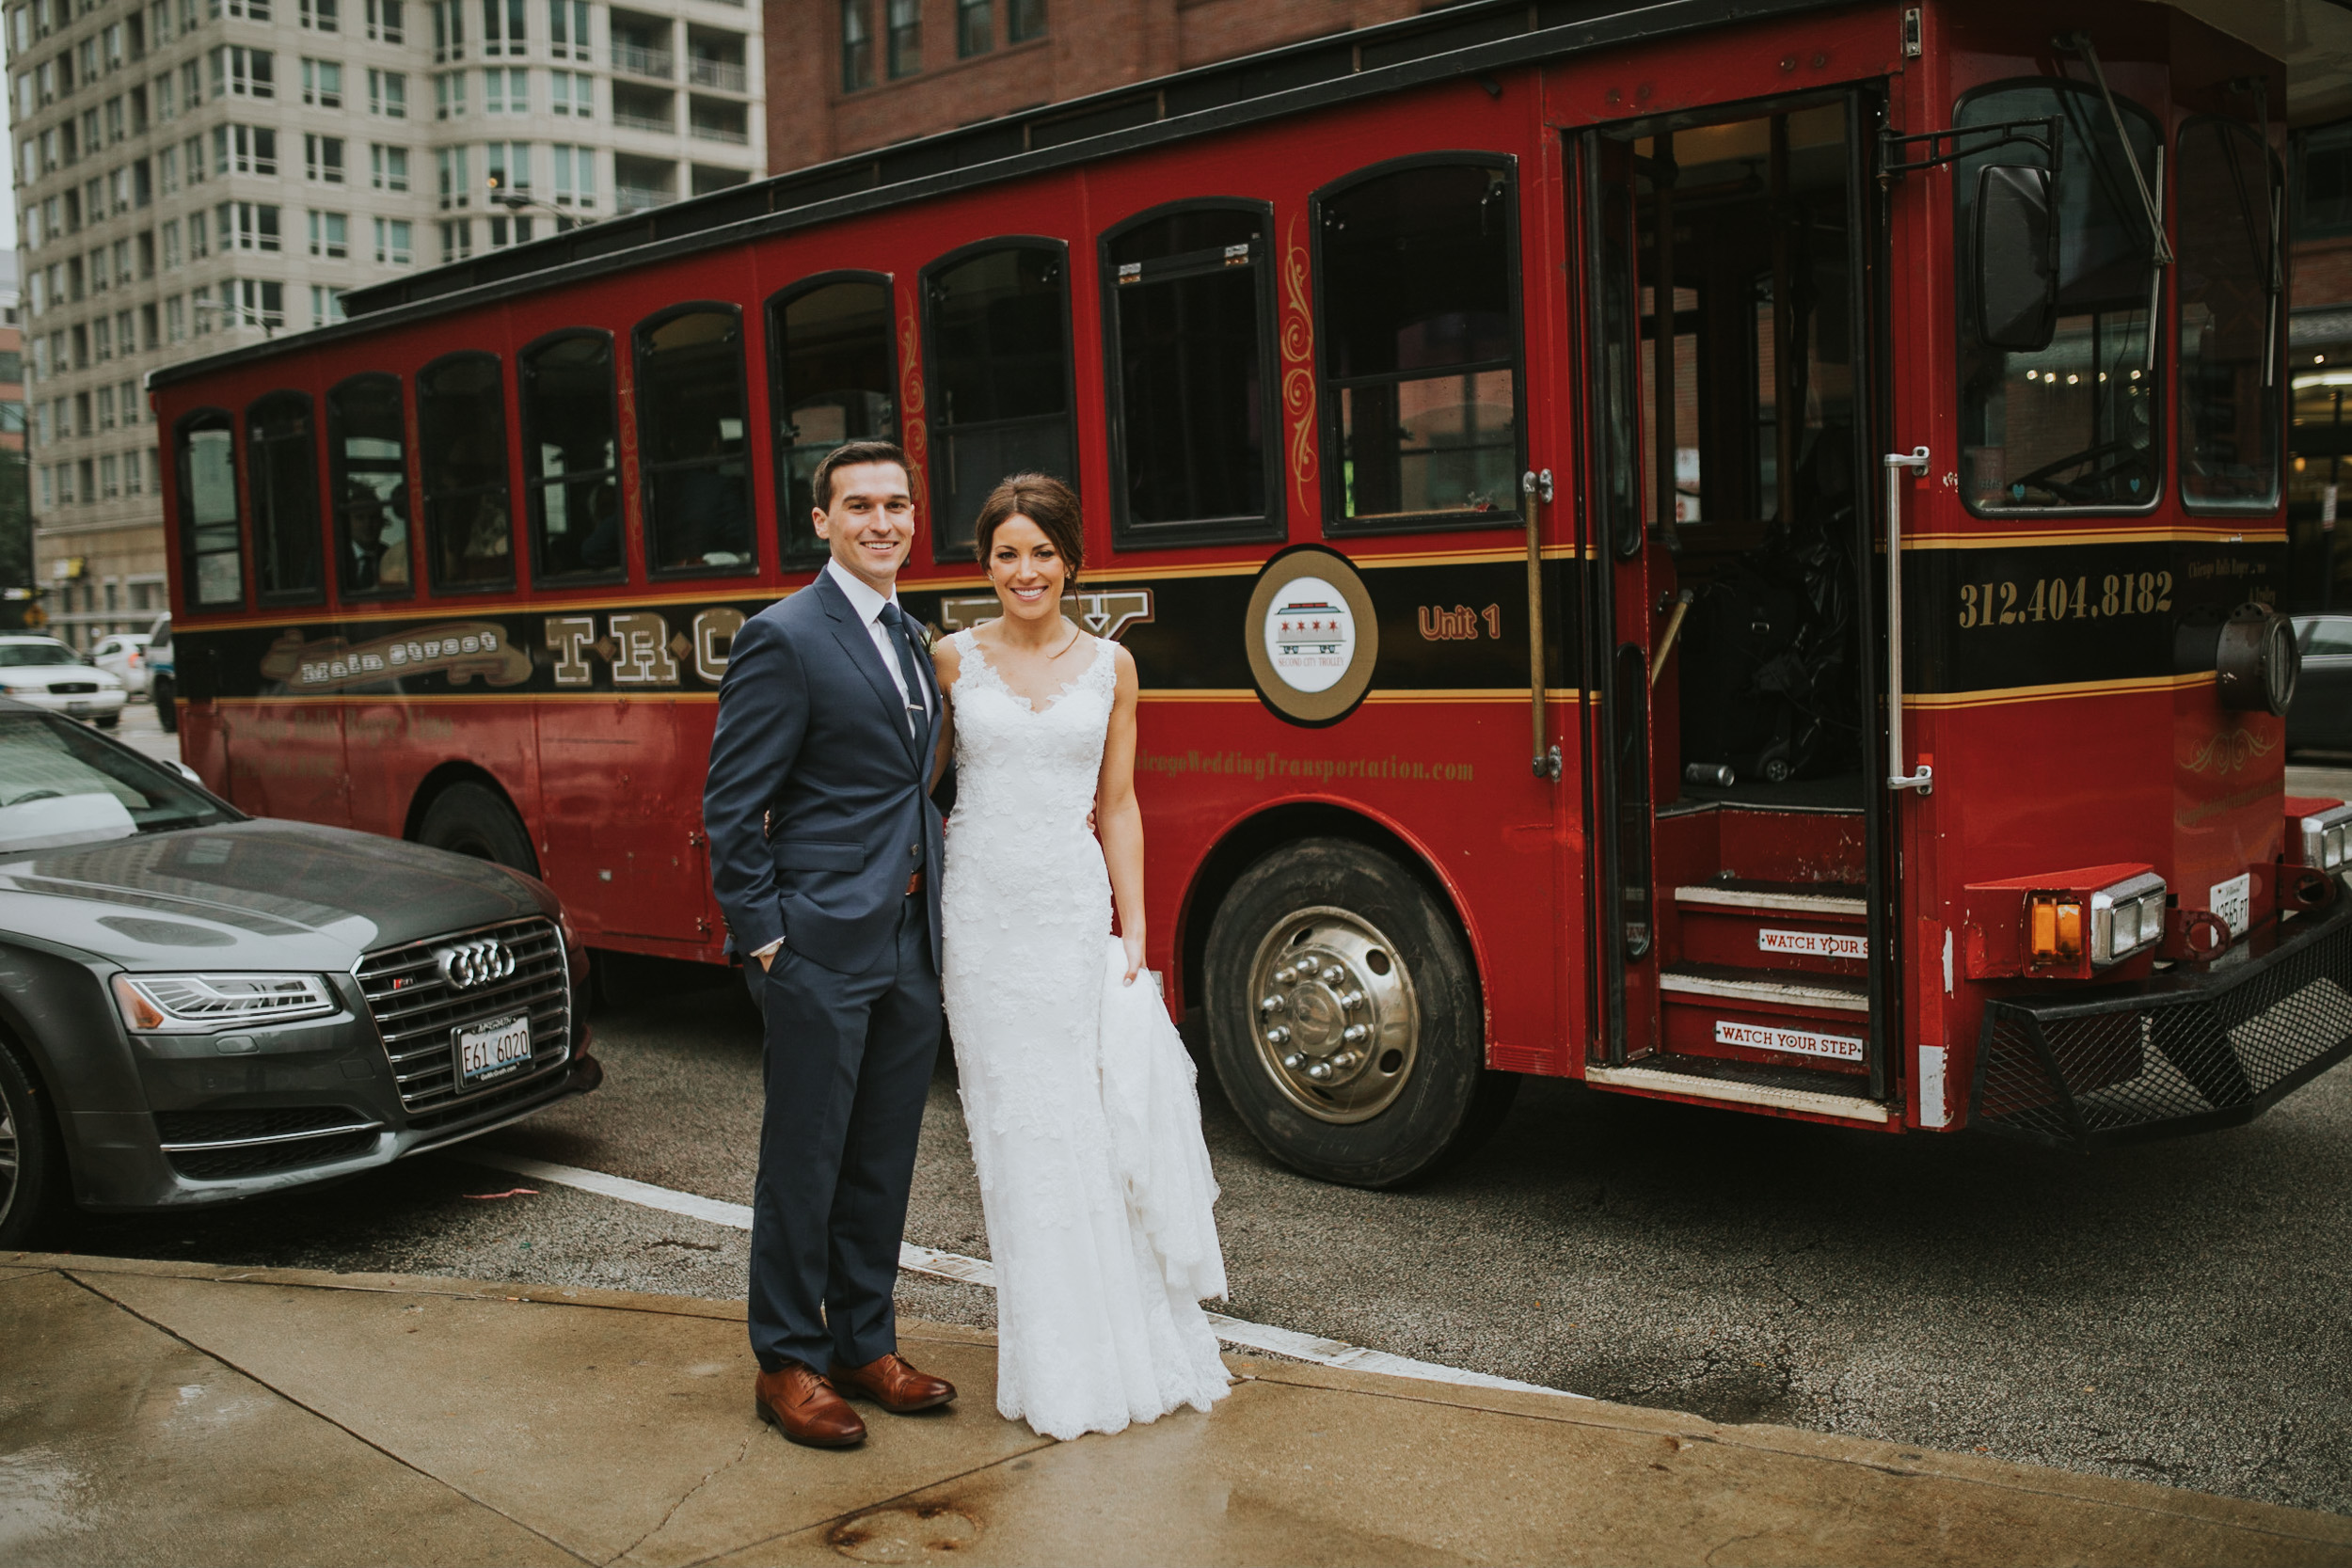 HaroldWashingtonLibraryWedding_Polly C Photography 1704144934.jpg